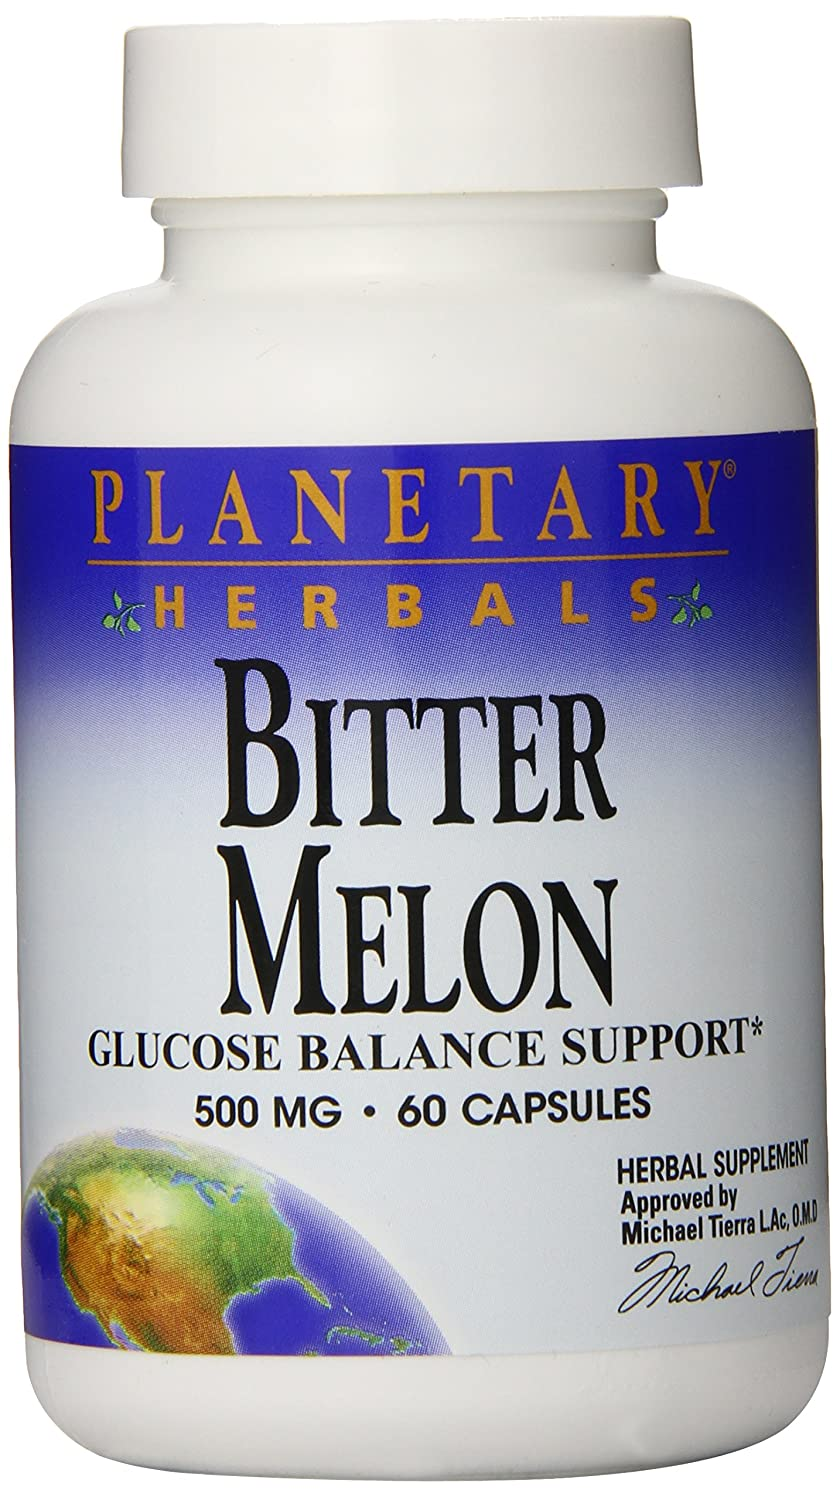 Buy herbal supplements 1000 count capsules - Amazon Com Planetary Herbals Bitter Melon Capsules 500 Mg 120 Count Health Personal Care